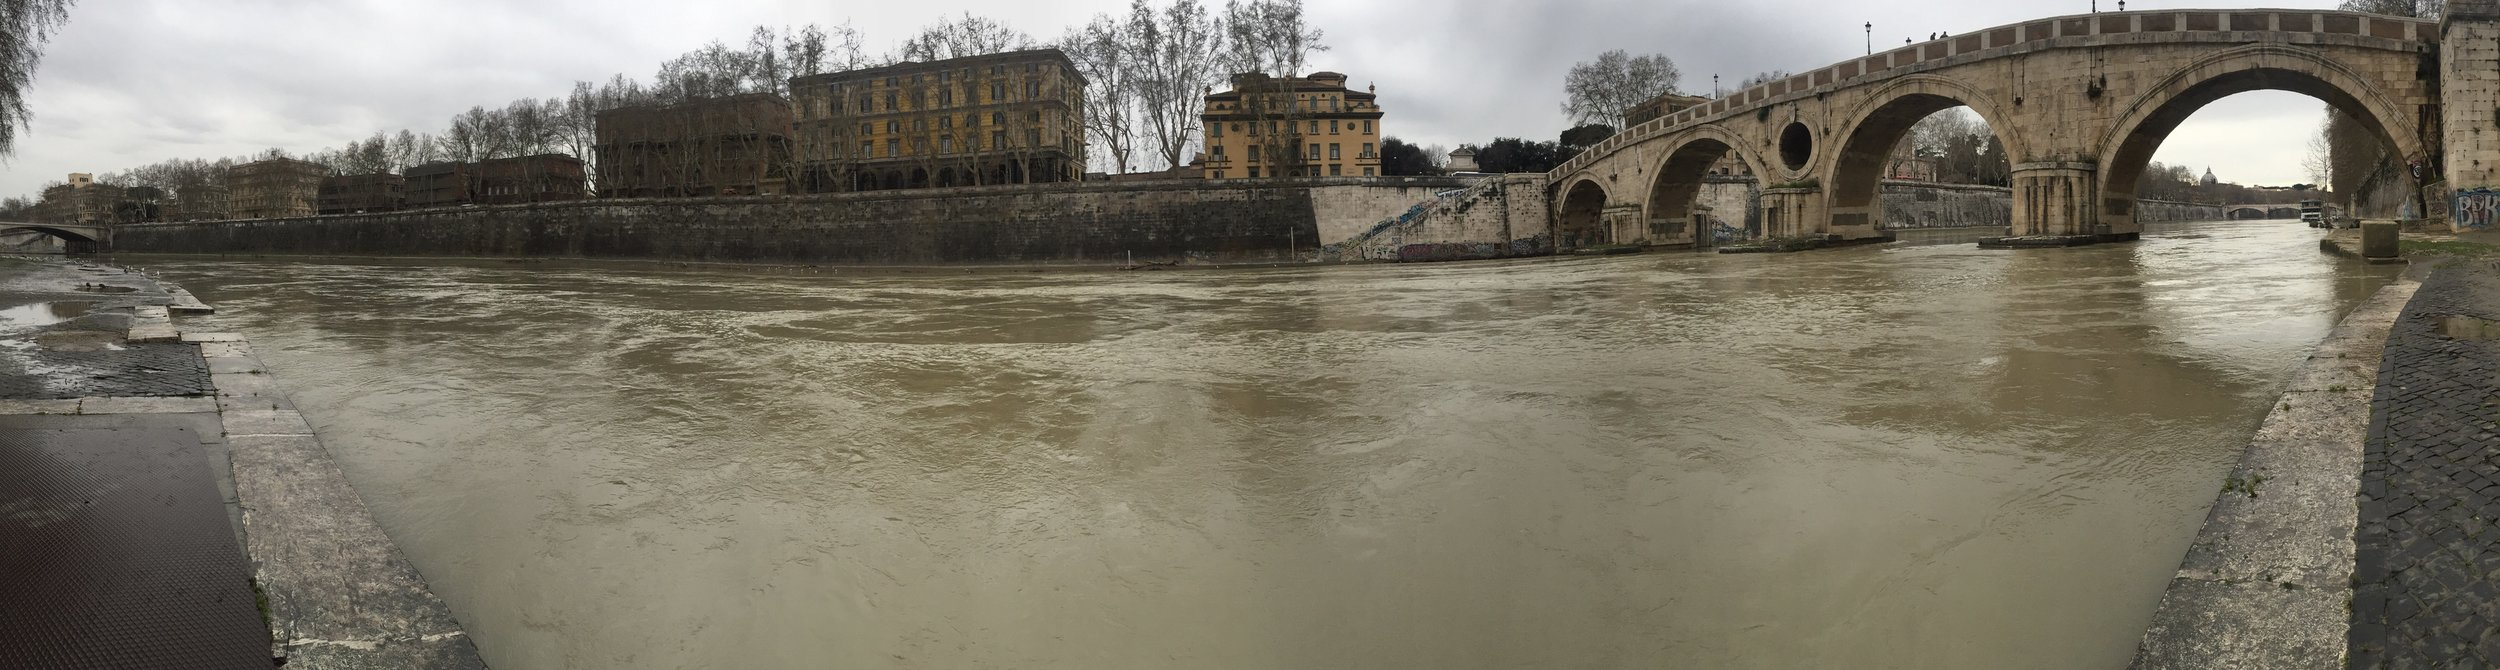 tiber pano clipped.jpeg